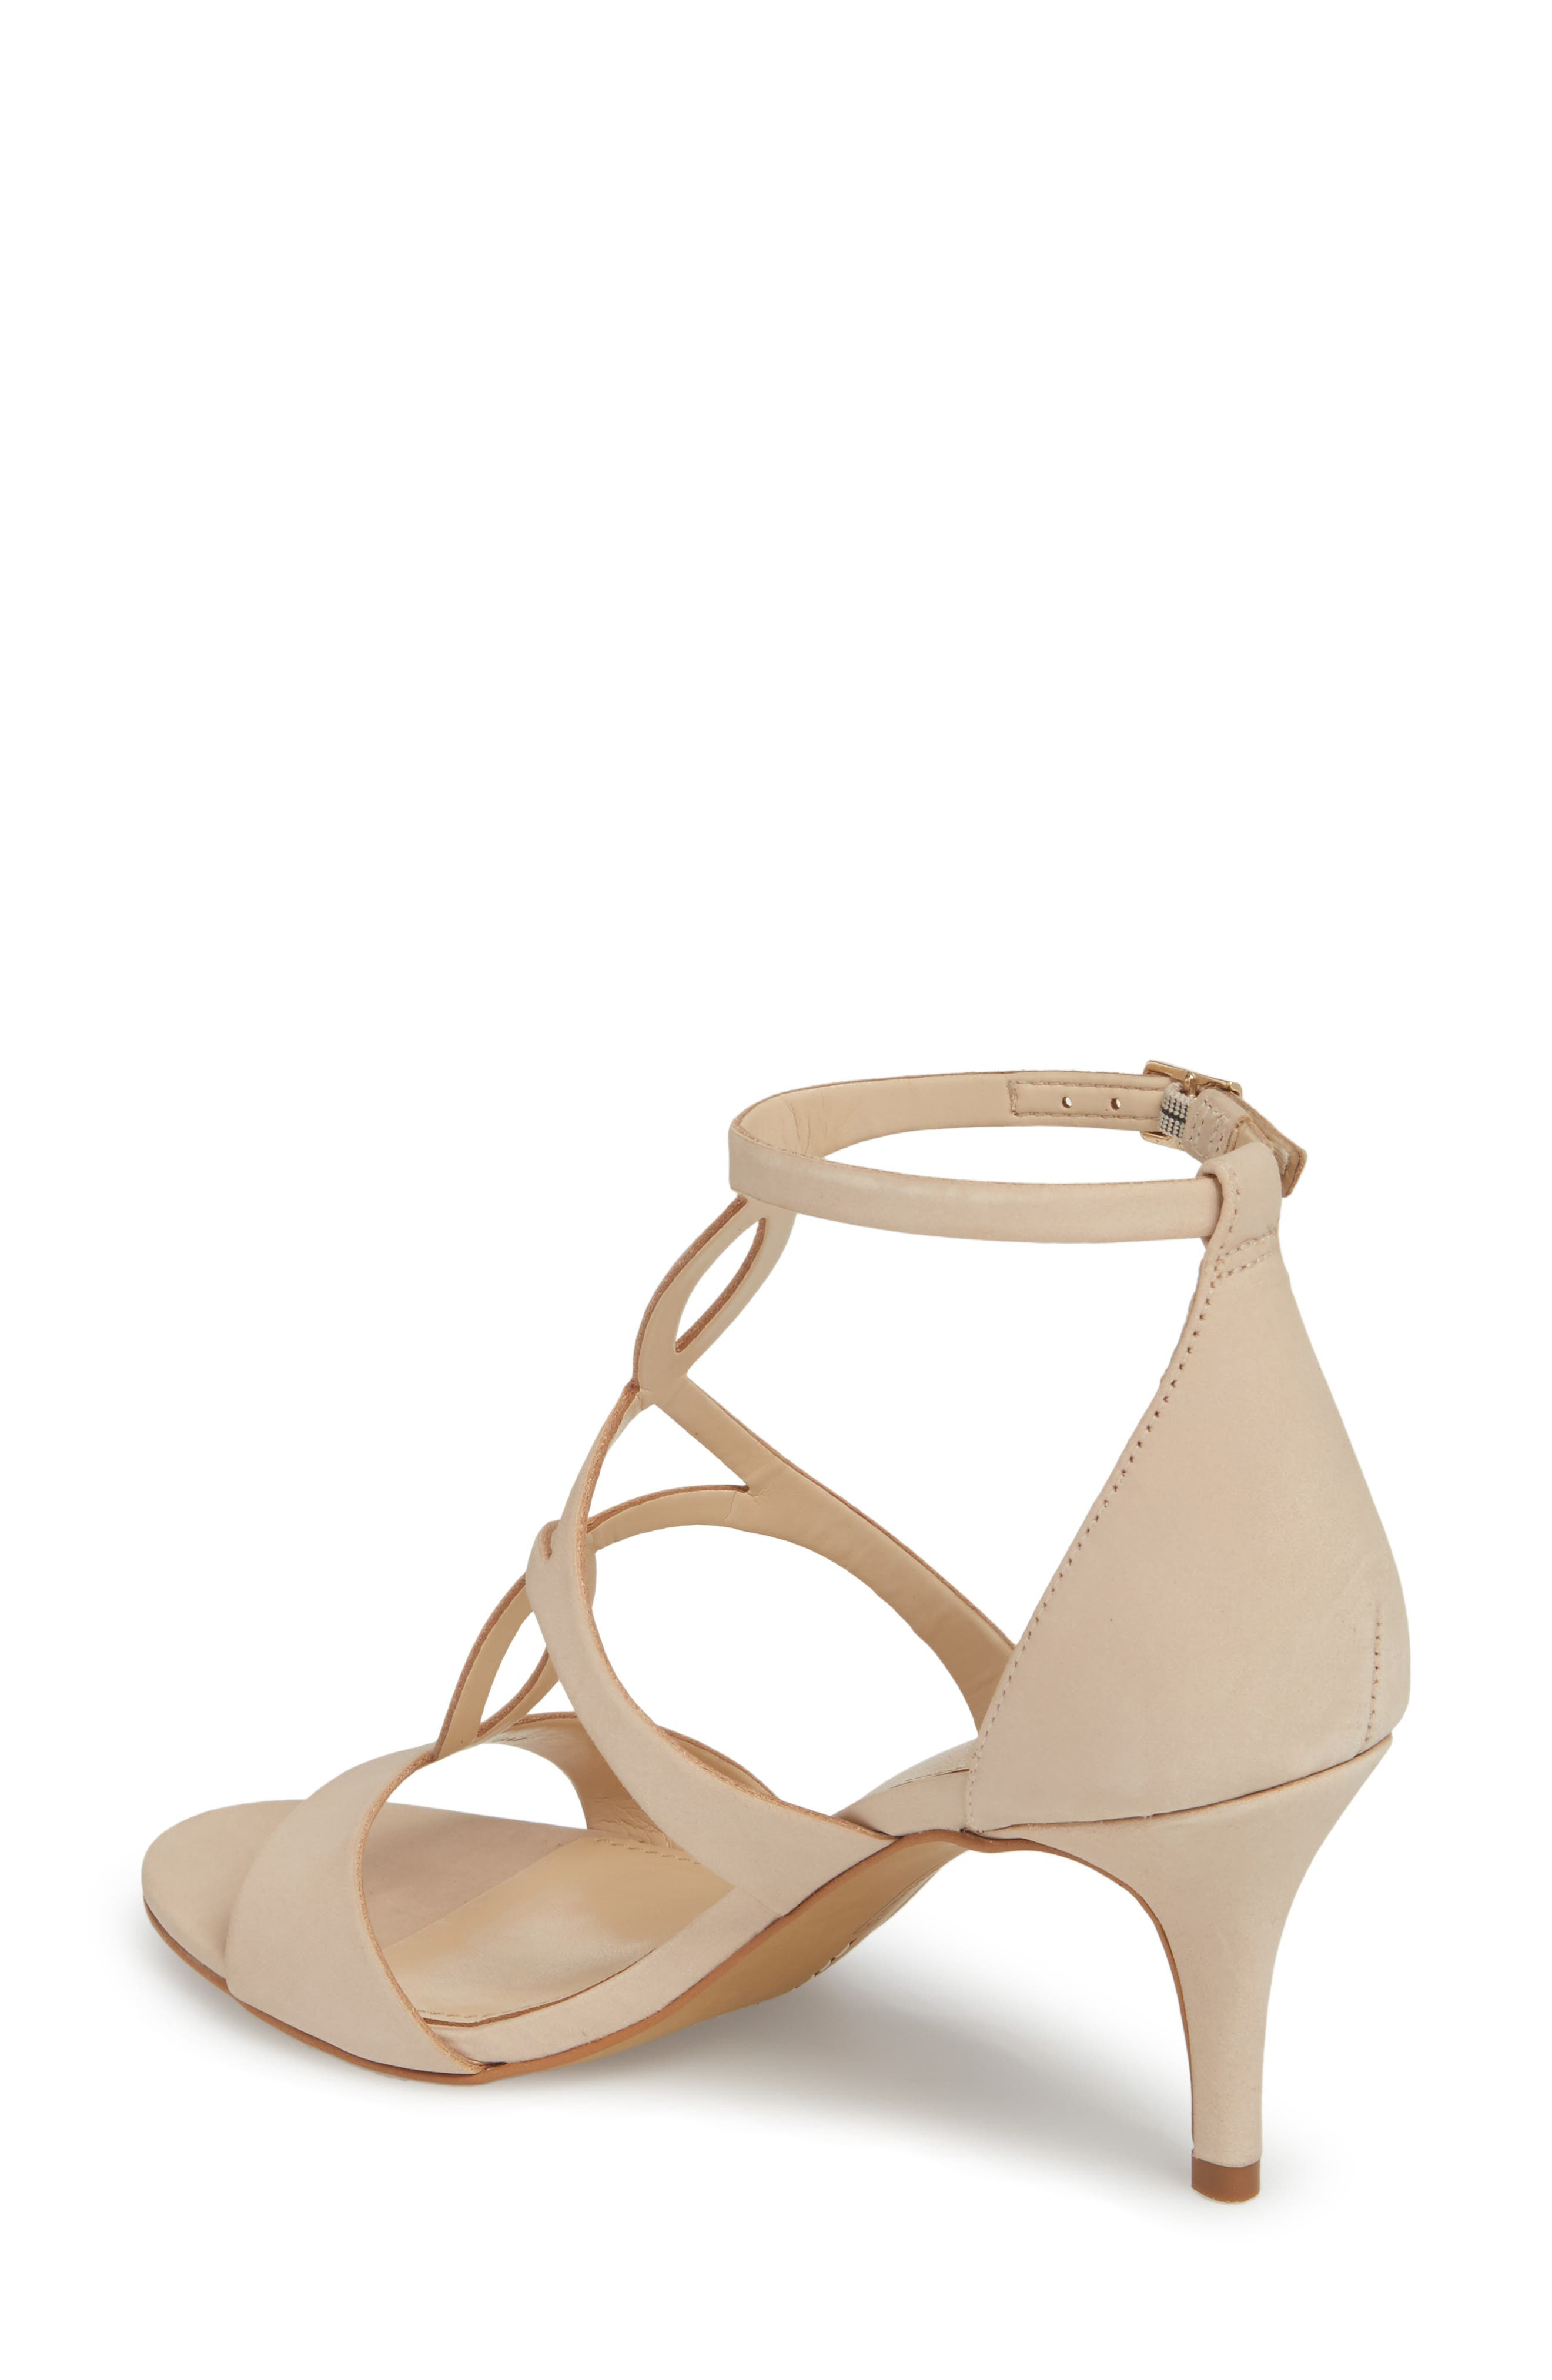 Payto Sandal,                             Alternate thumbnail 2, color,                             NUDE LEATHER